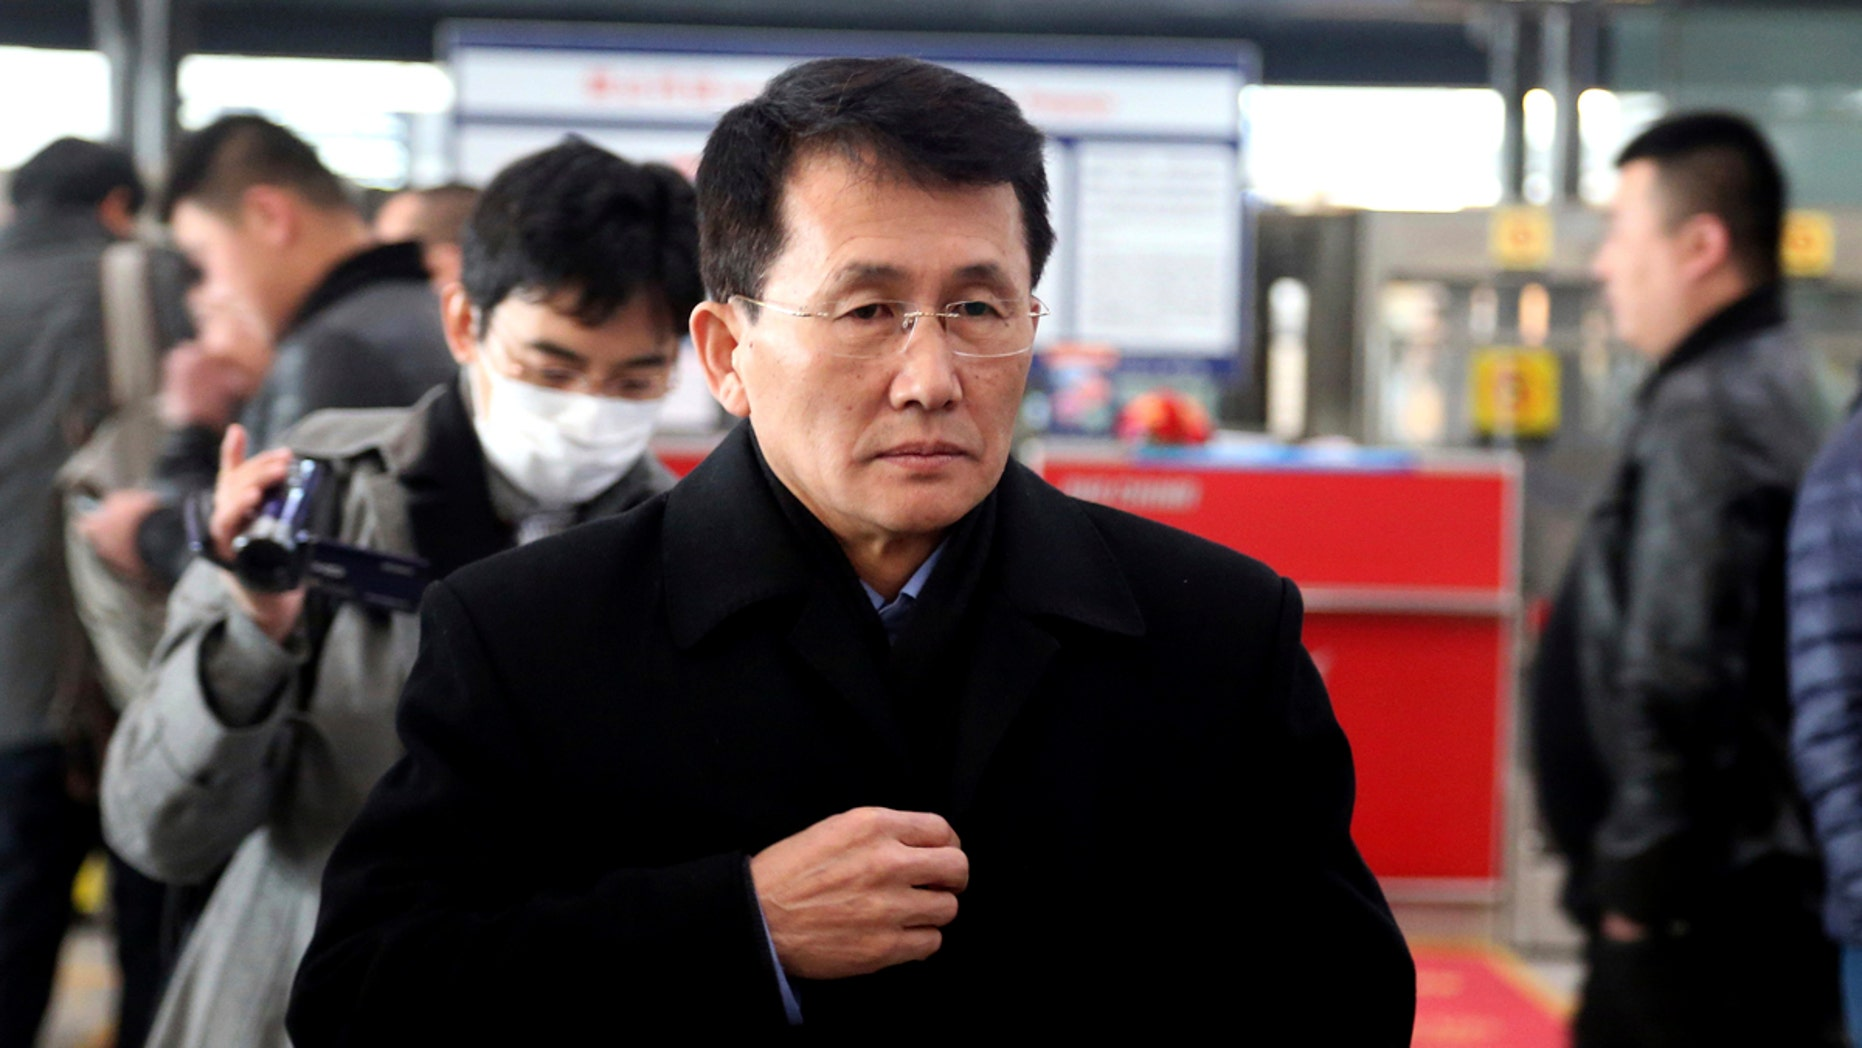 Choe Kang Il, a senior North Korean diplomat handling North American affairs, is seen at the Beijing Capital International Airport in Beijing, March 18, 2018.